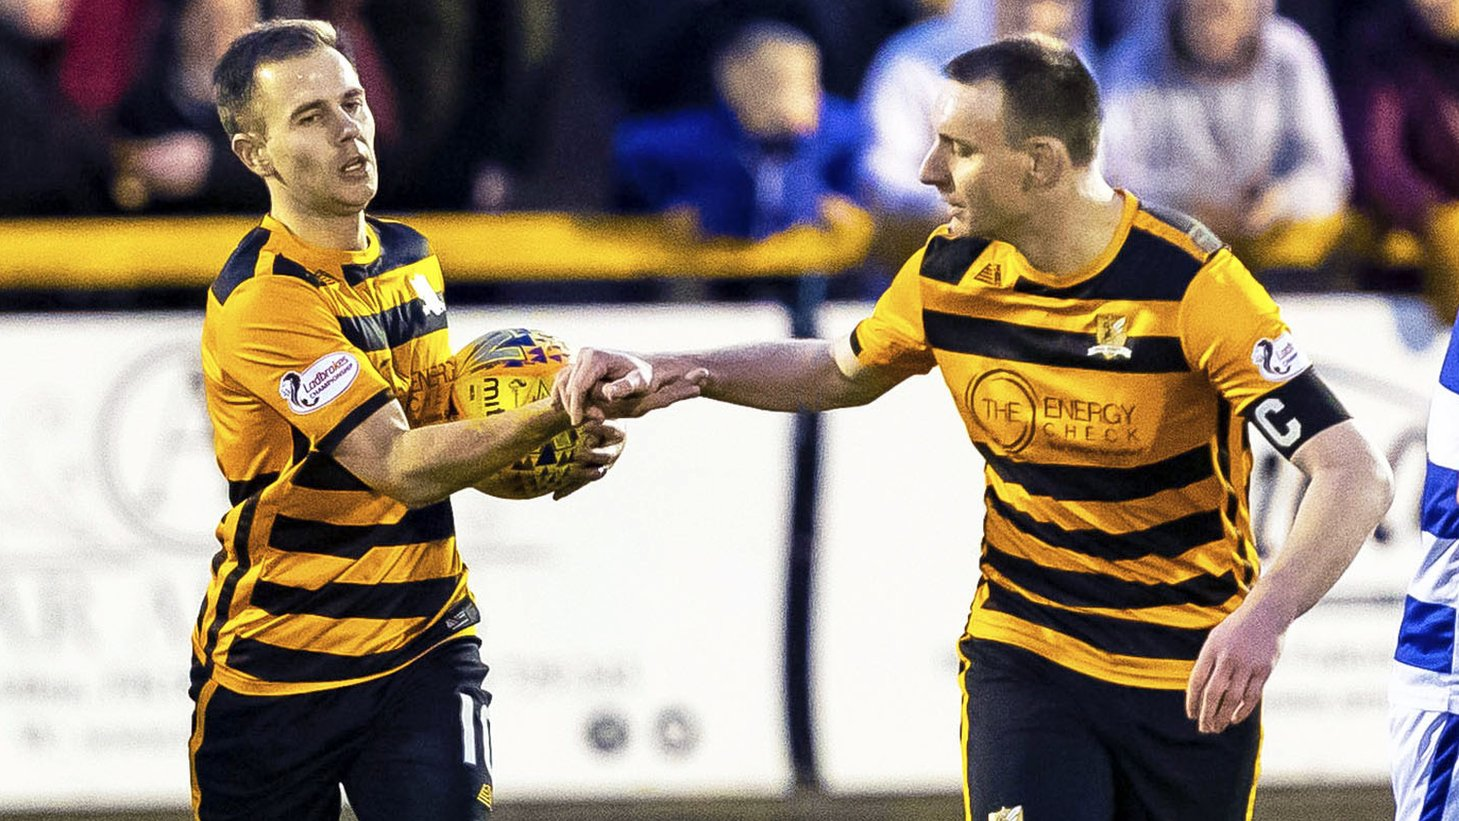 Alloa Athletic 1-2 Greenock Morton: Own goal completes comeback win